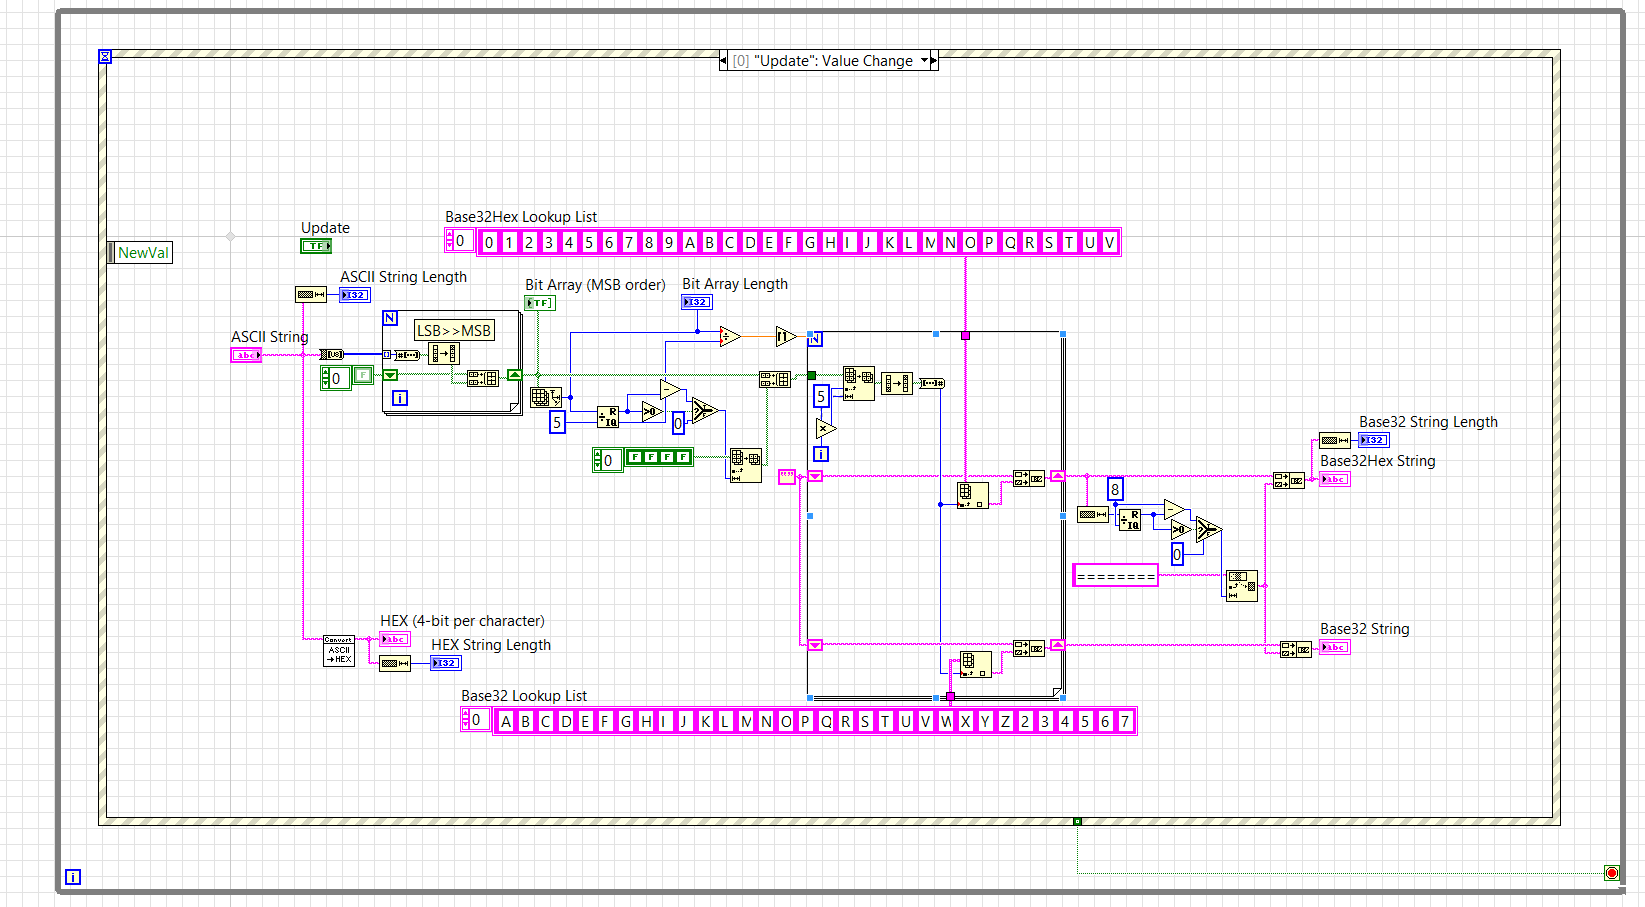 LabVIEW Utility VIs for Base64 and Base32Hex Encoding Using